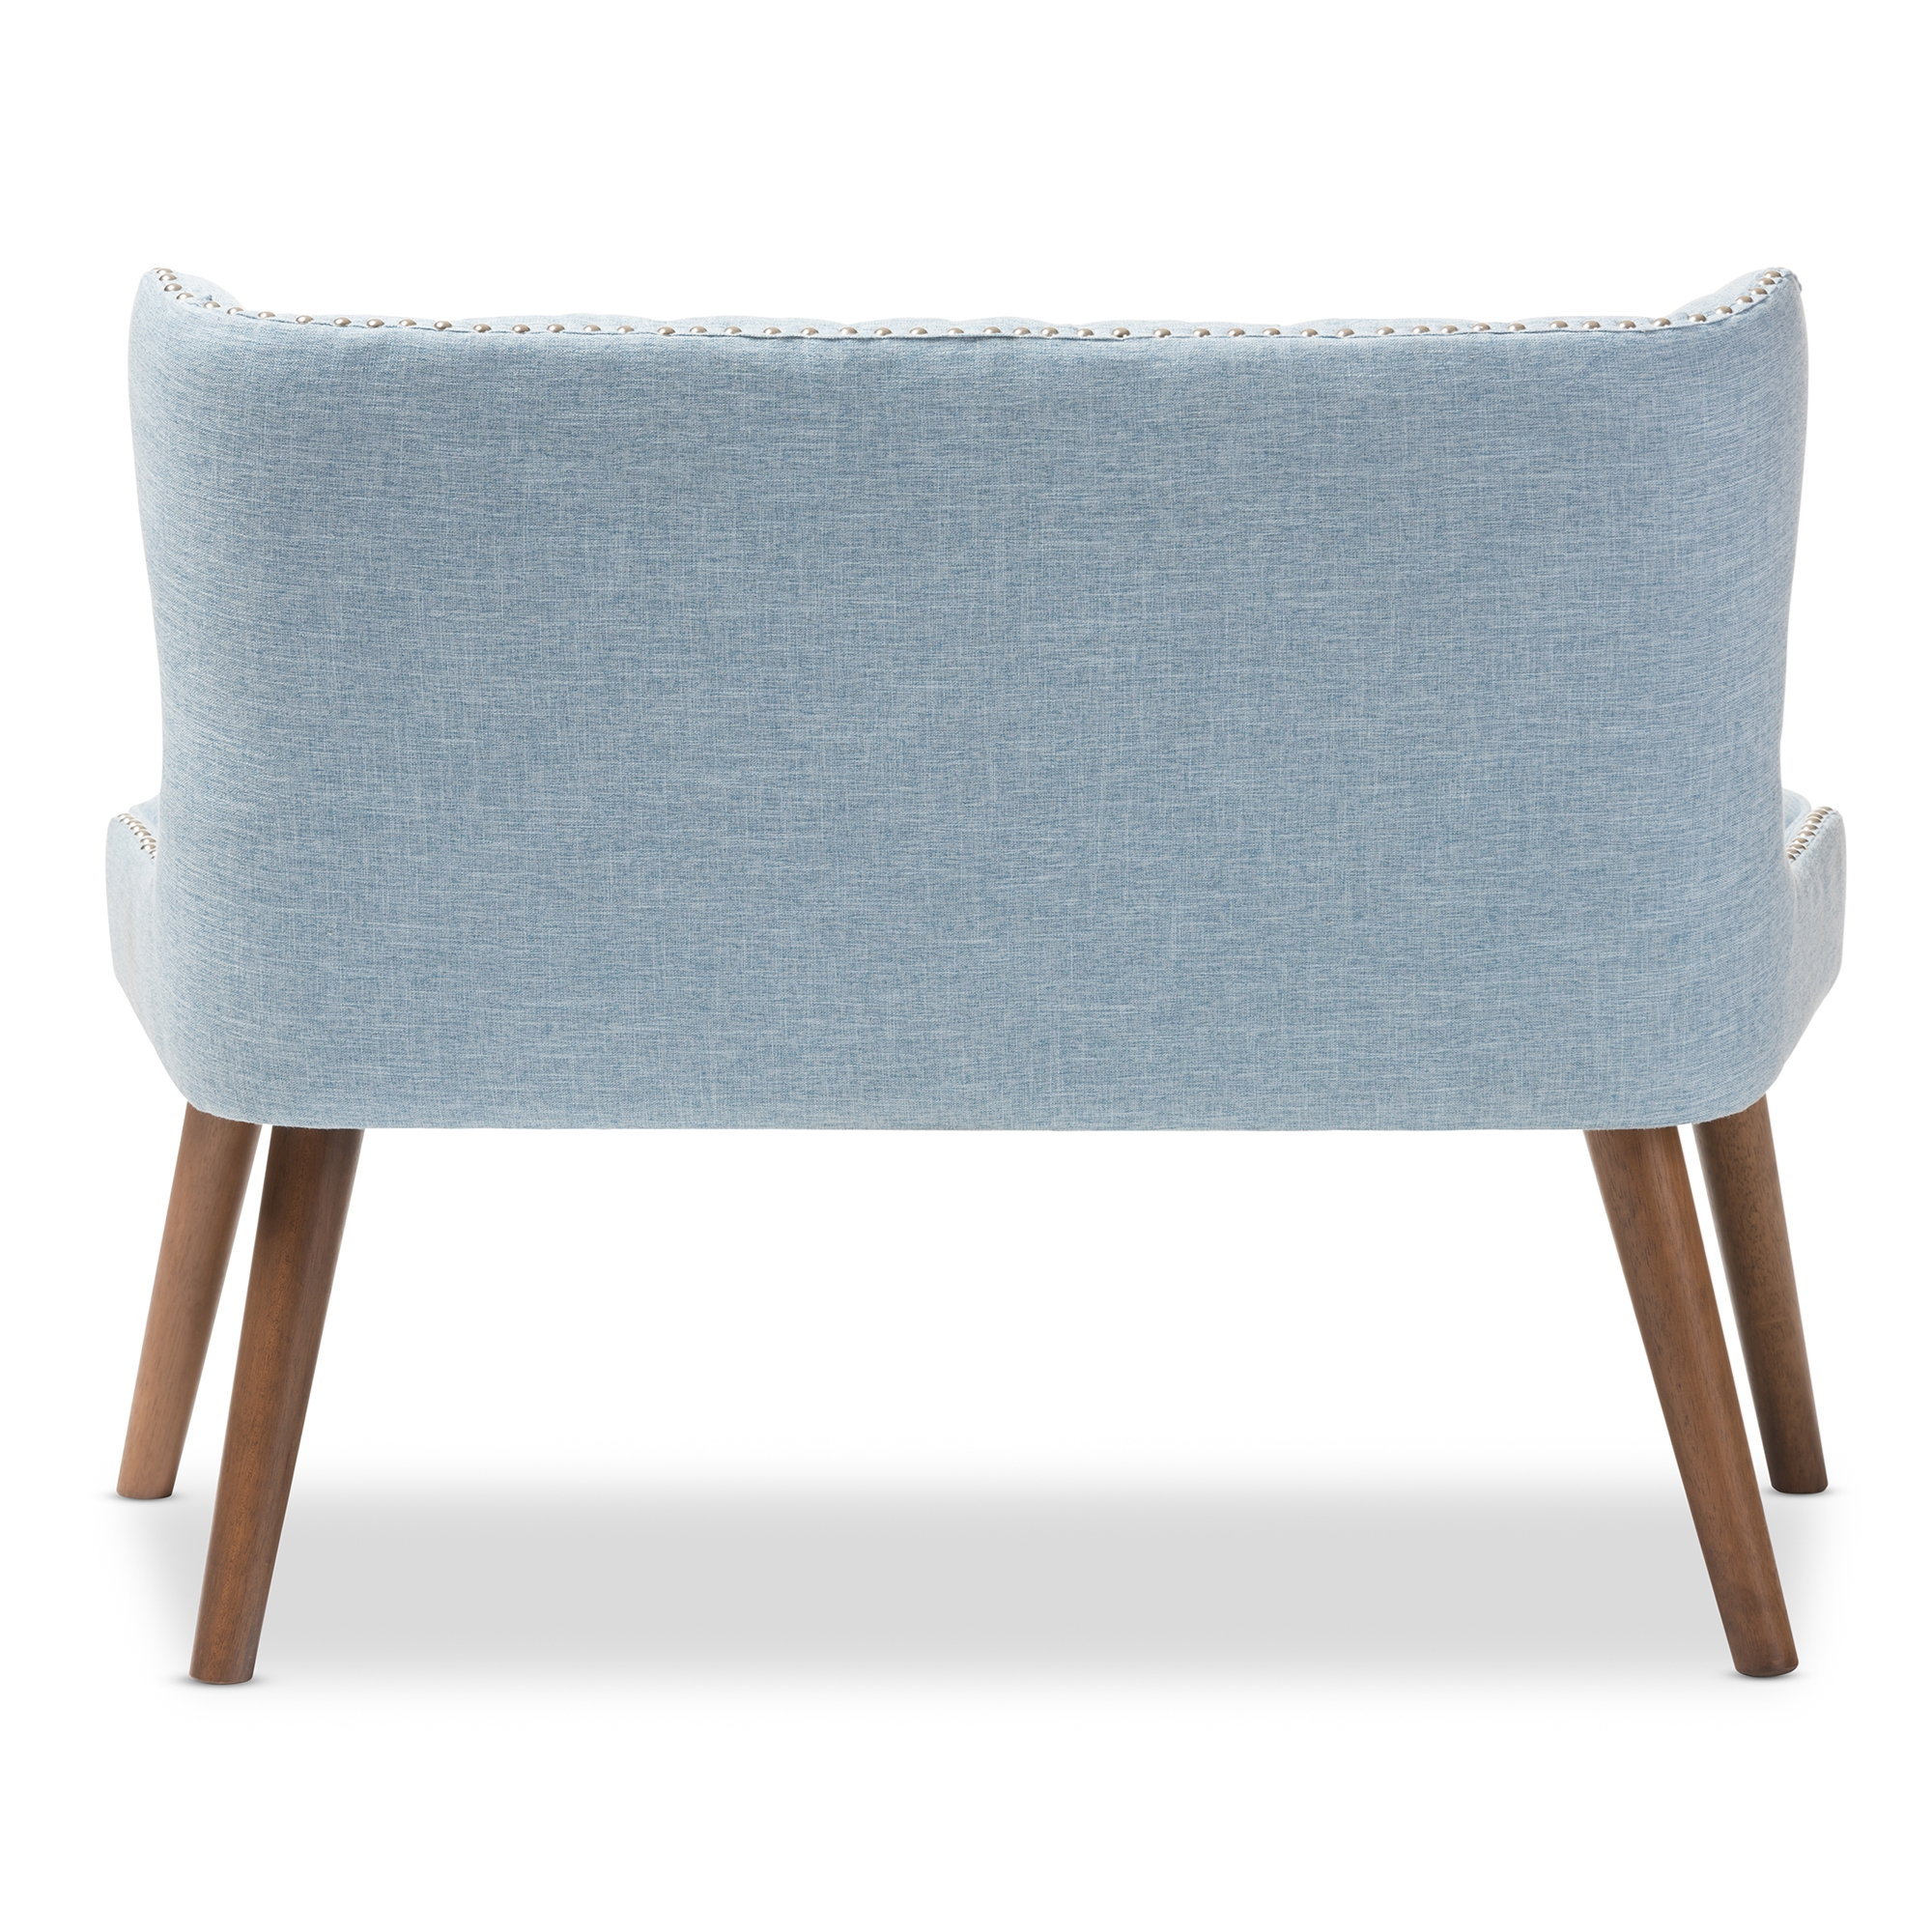 baxton studio scarlett midcentury modern brown wood and light blue fabric upholstered button